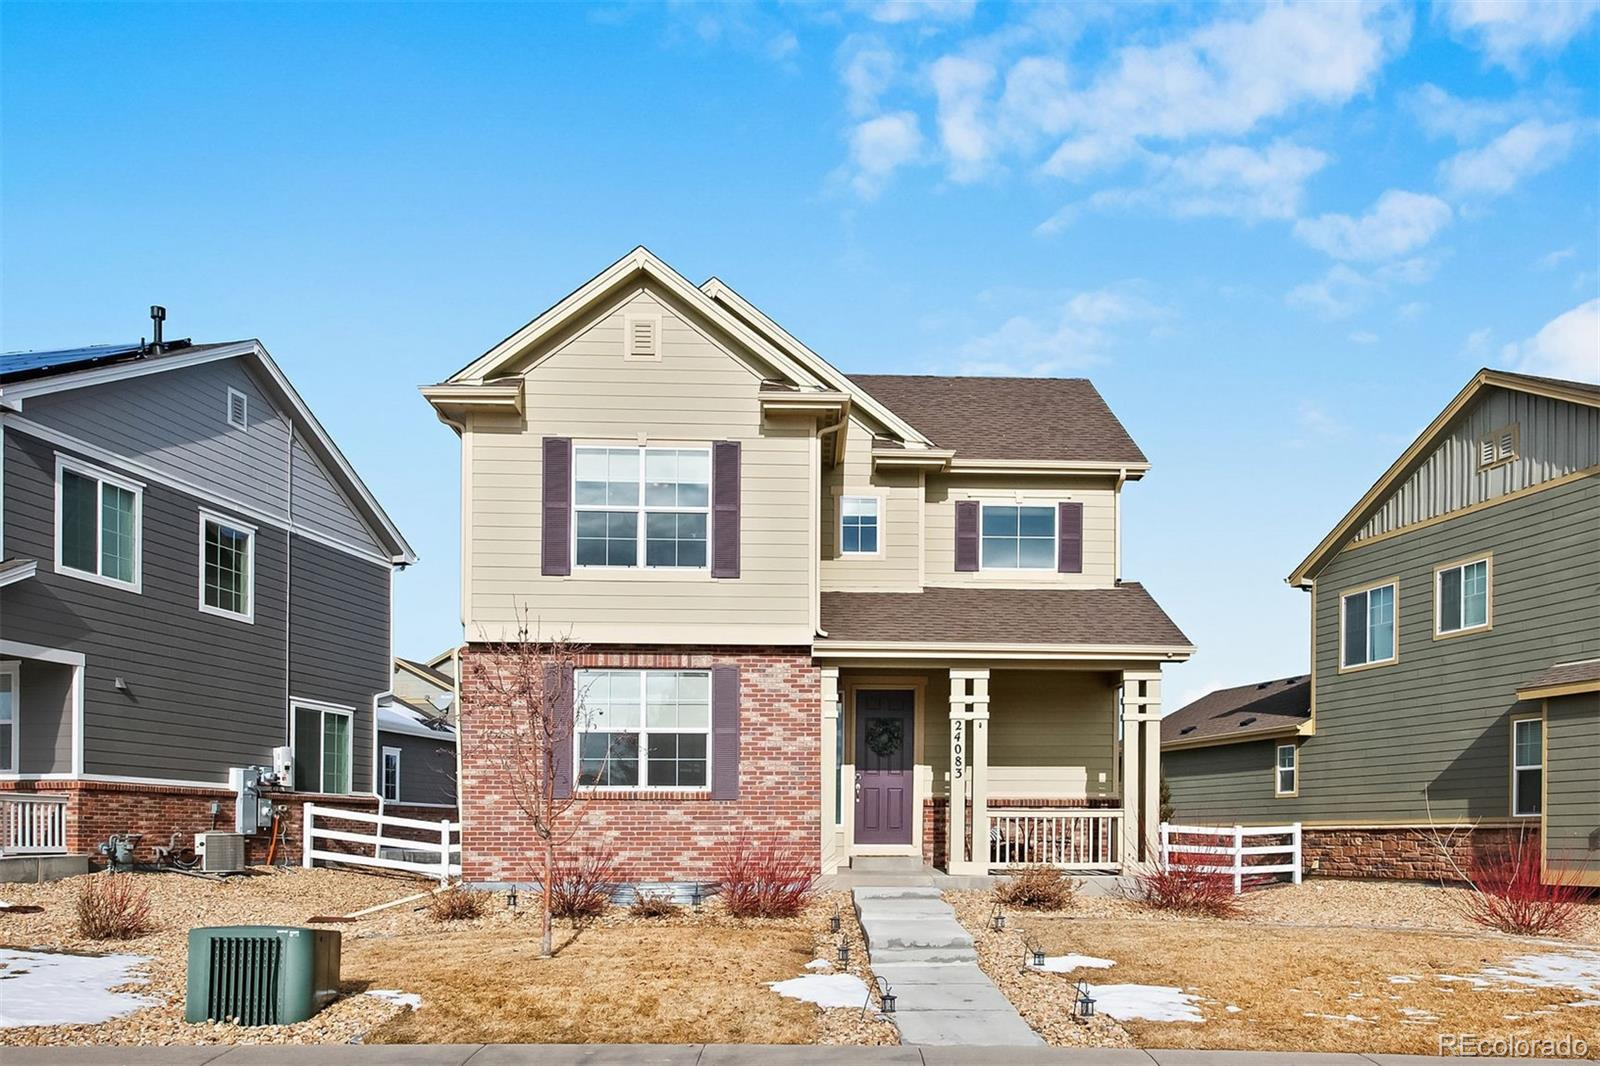 MLS# 9048750 - 2 - 24083 E Florida Avenue, Aurora, CO 80018